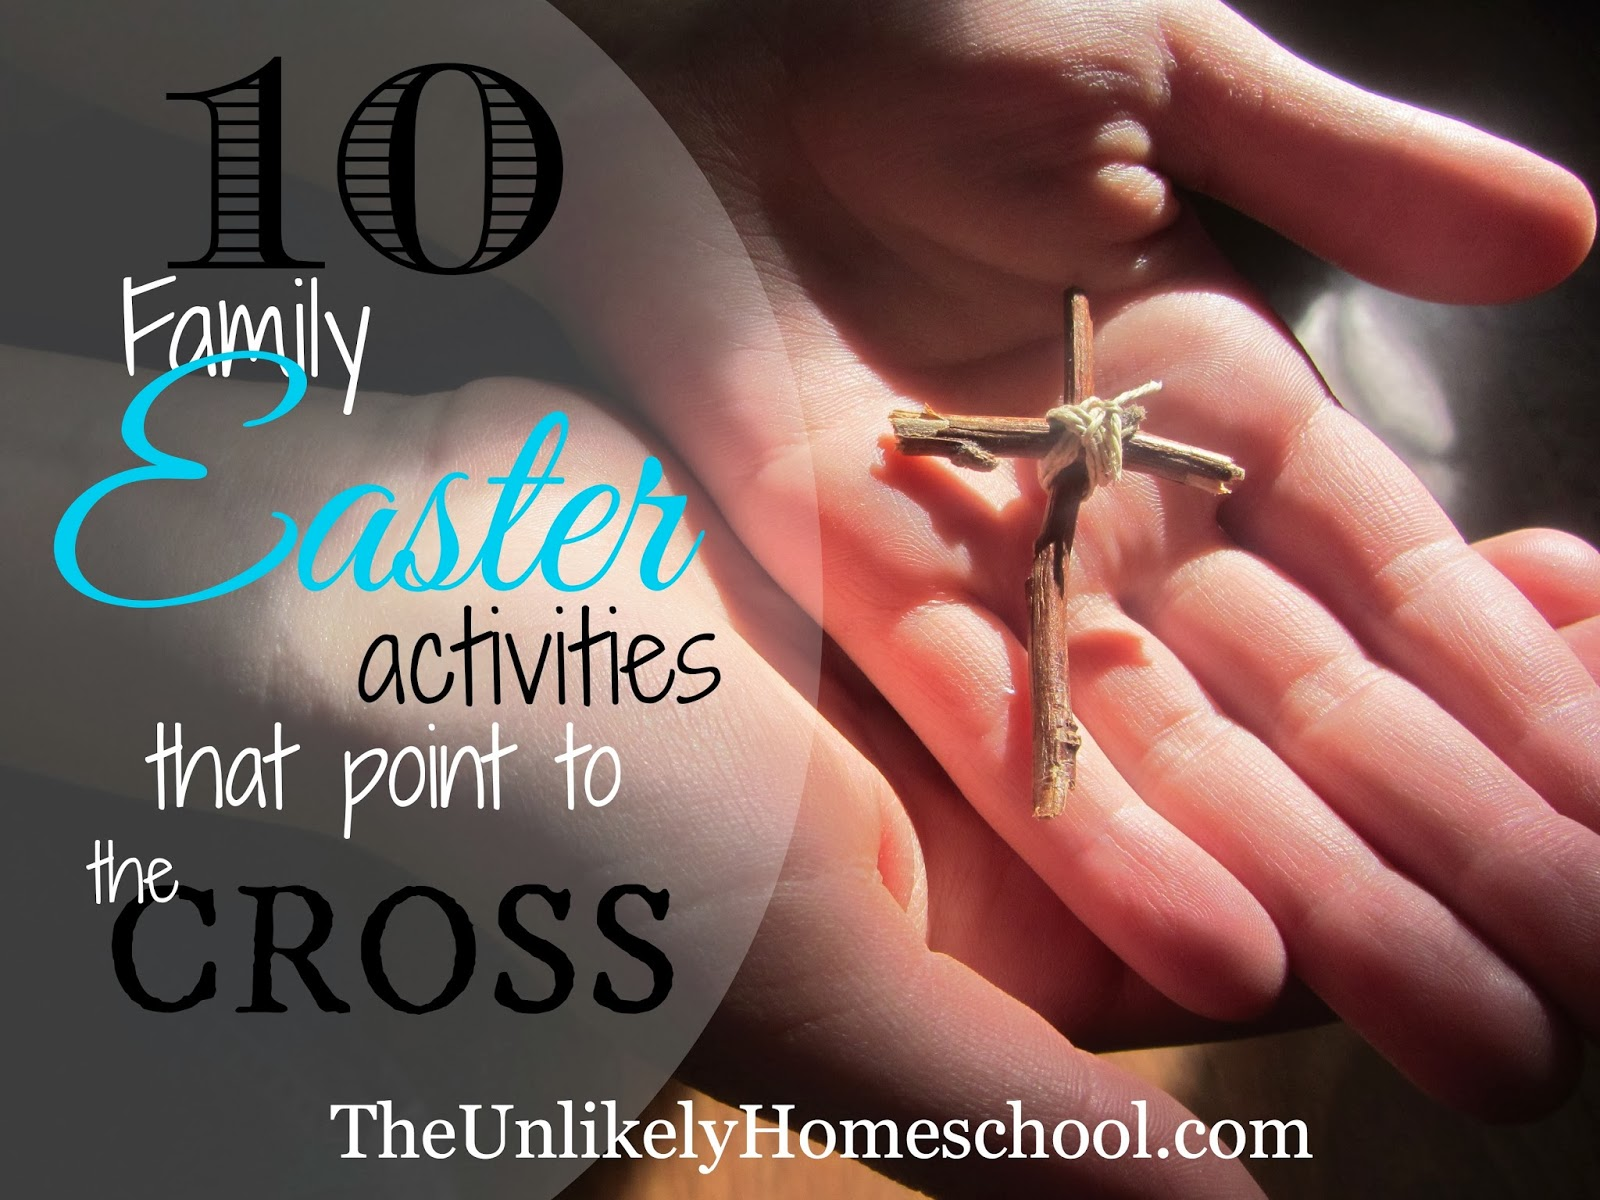 10 Family Easter Activities that Point to the Cross-The Unlikely Homeschool